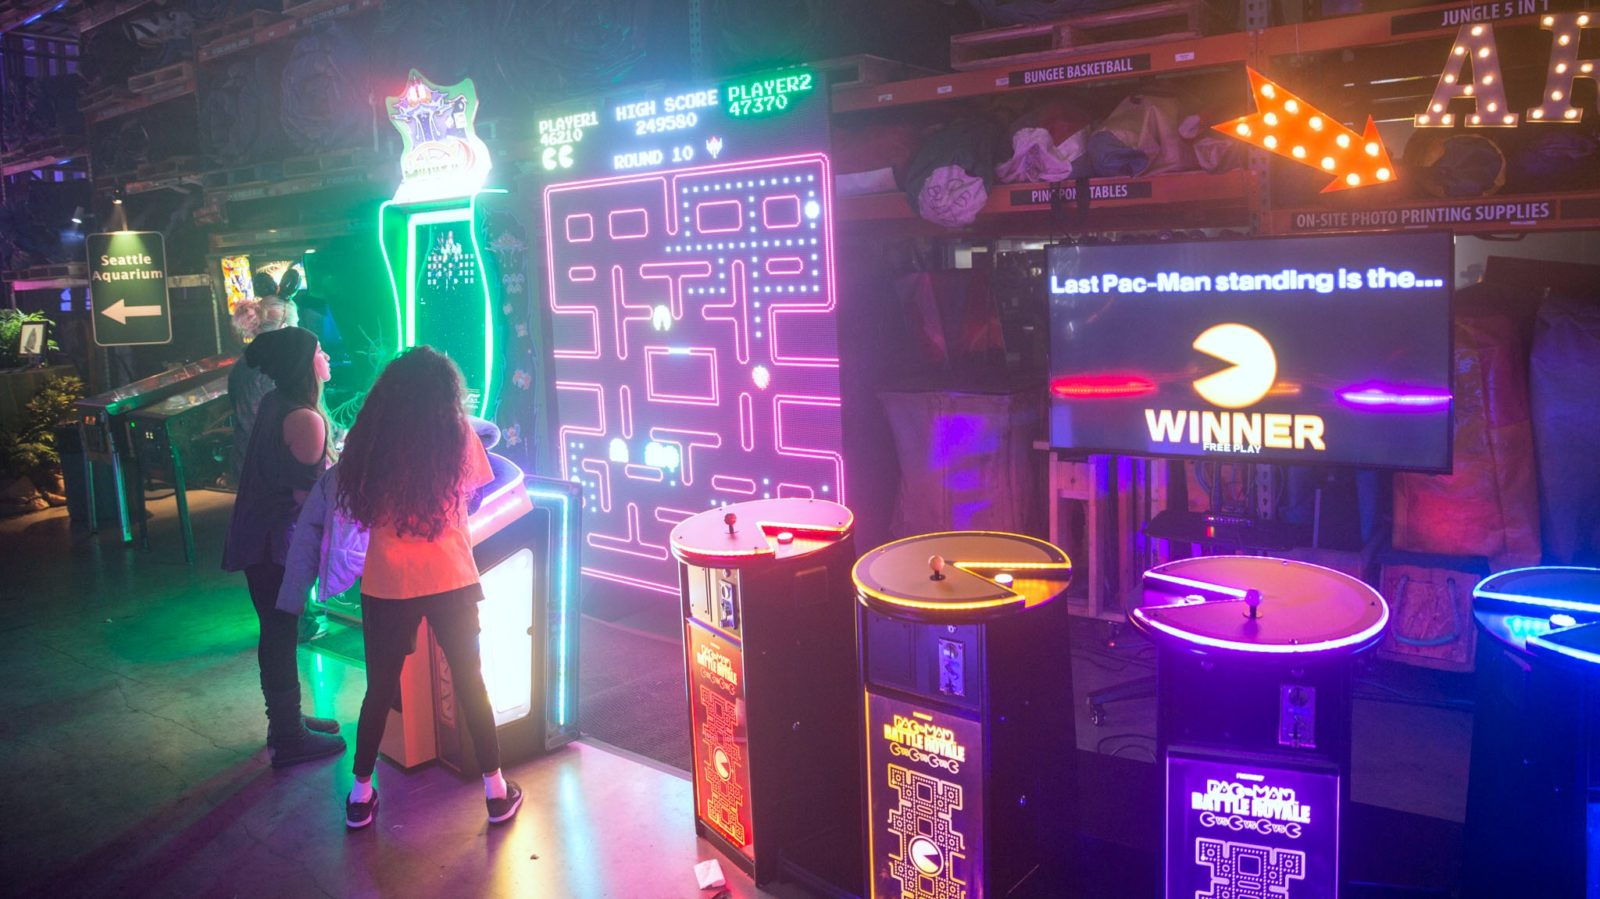 amazing arcade games at a company party